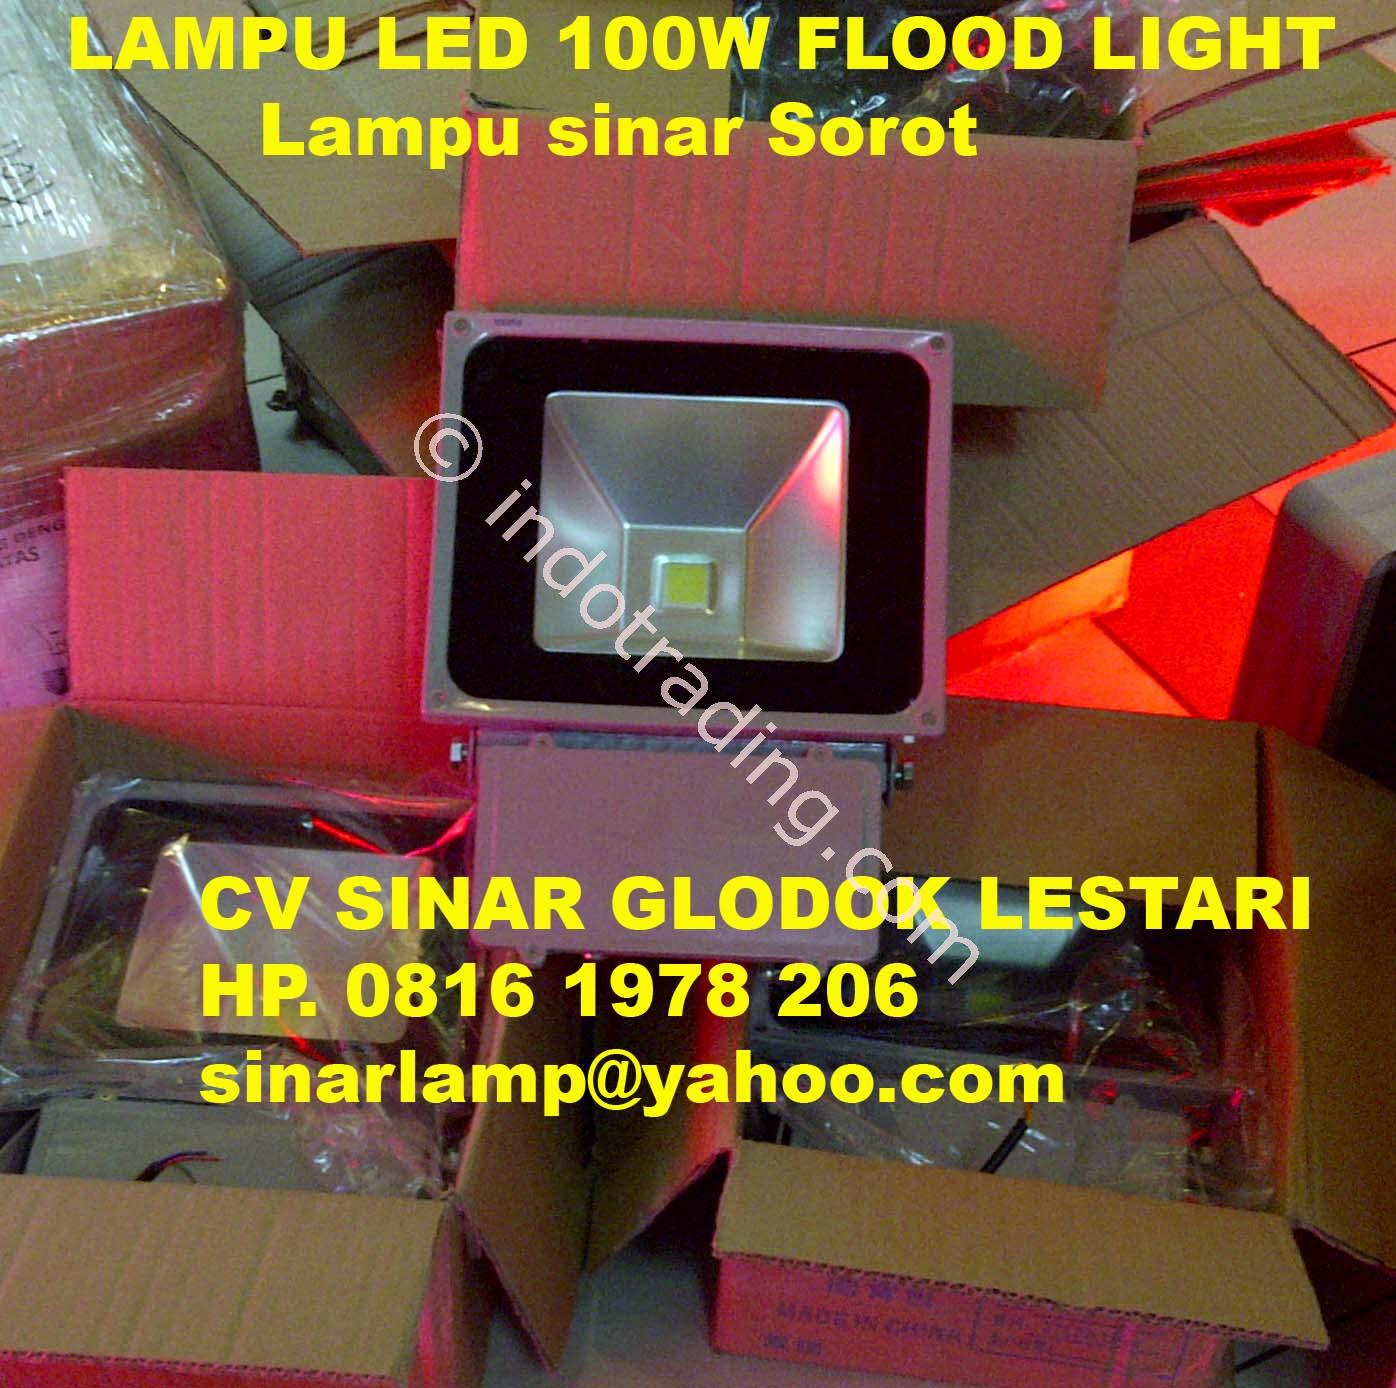 Jual Lampu Sorot LED 80 Watt Flood Light Harga Murah